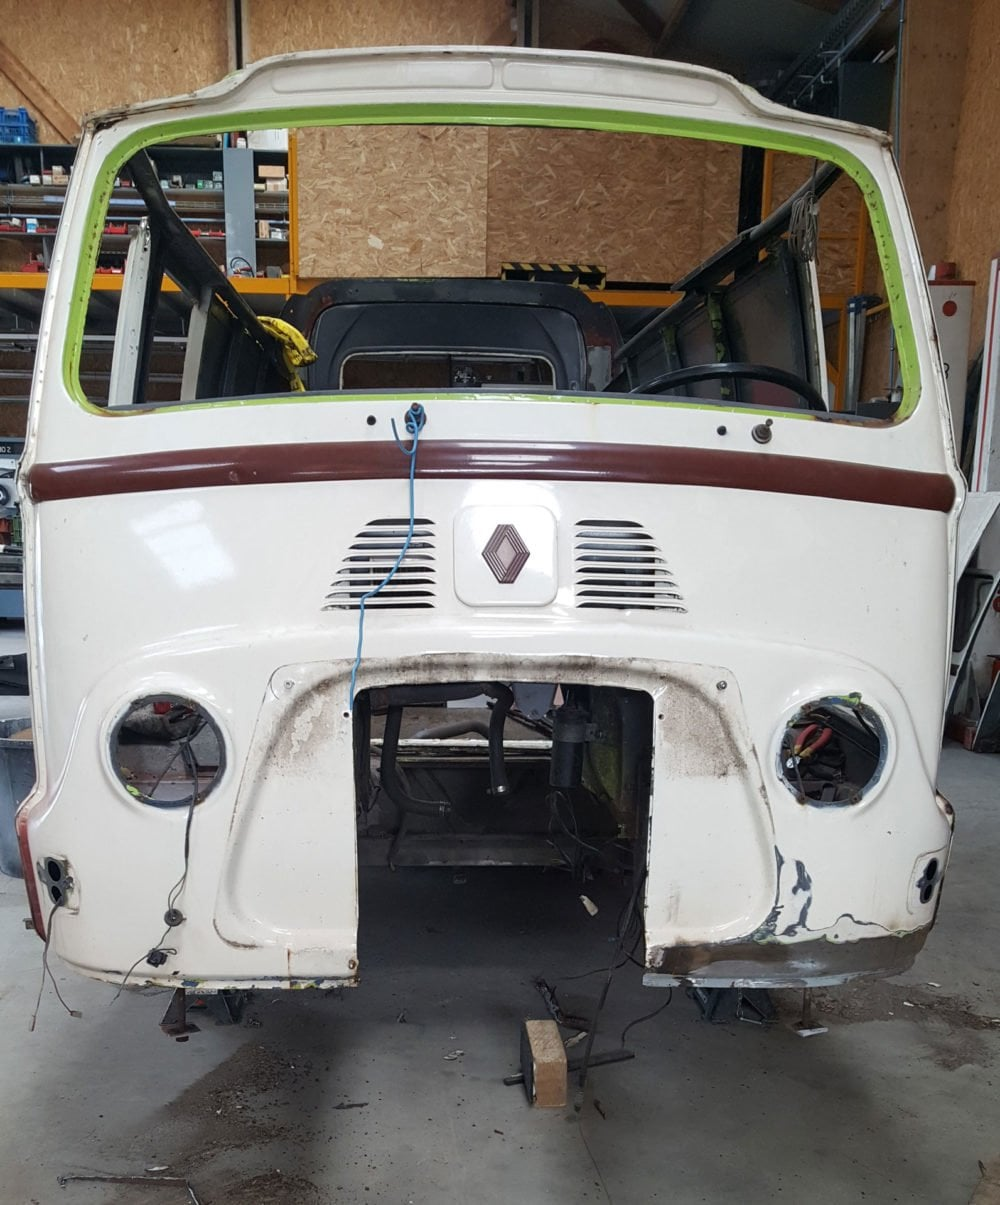 restauration renault estafette 1975 8